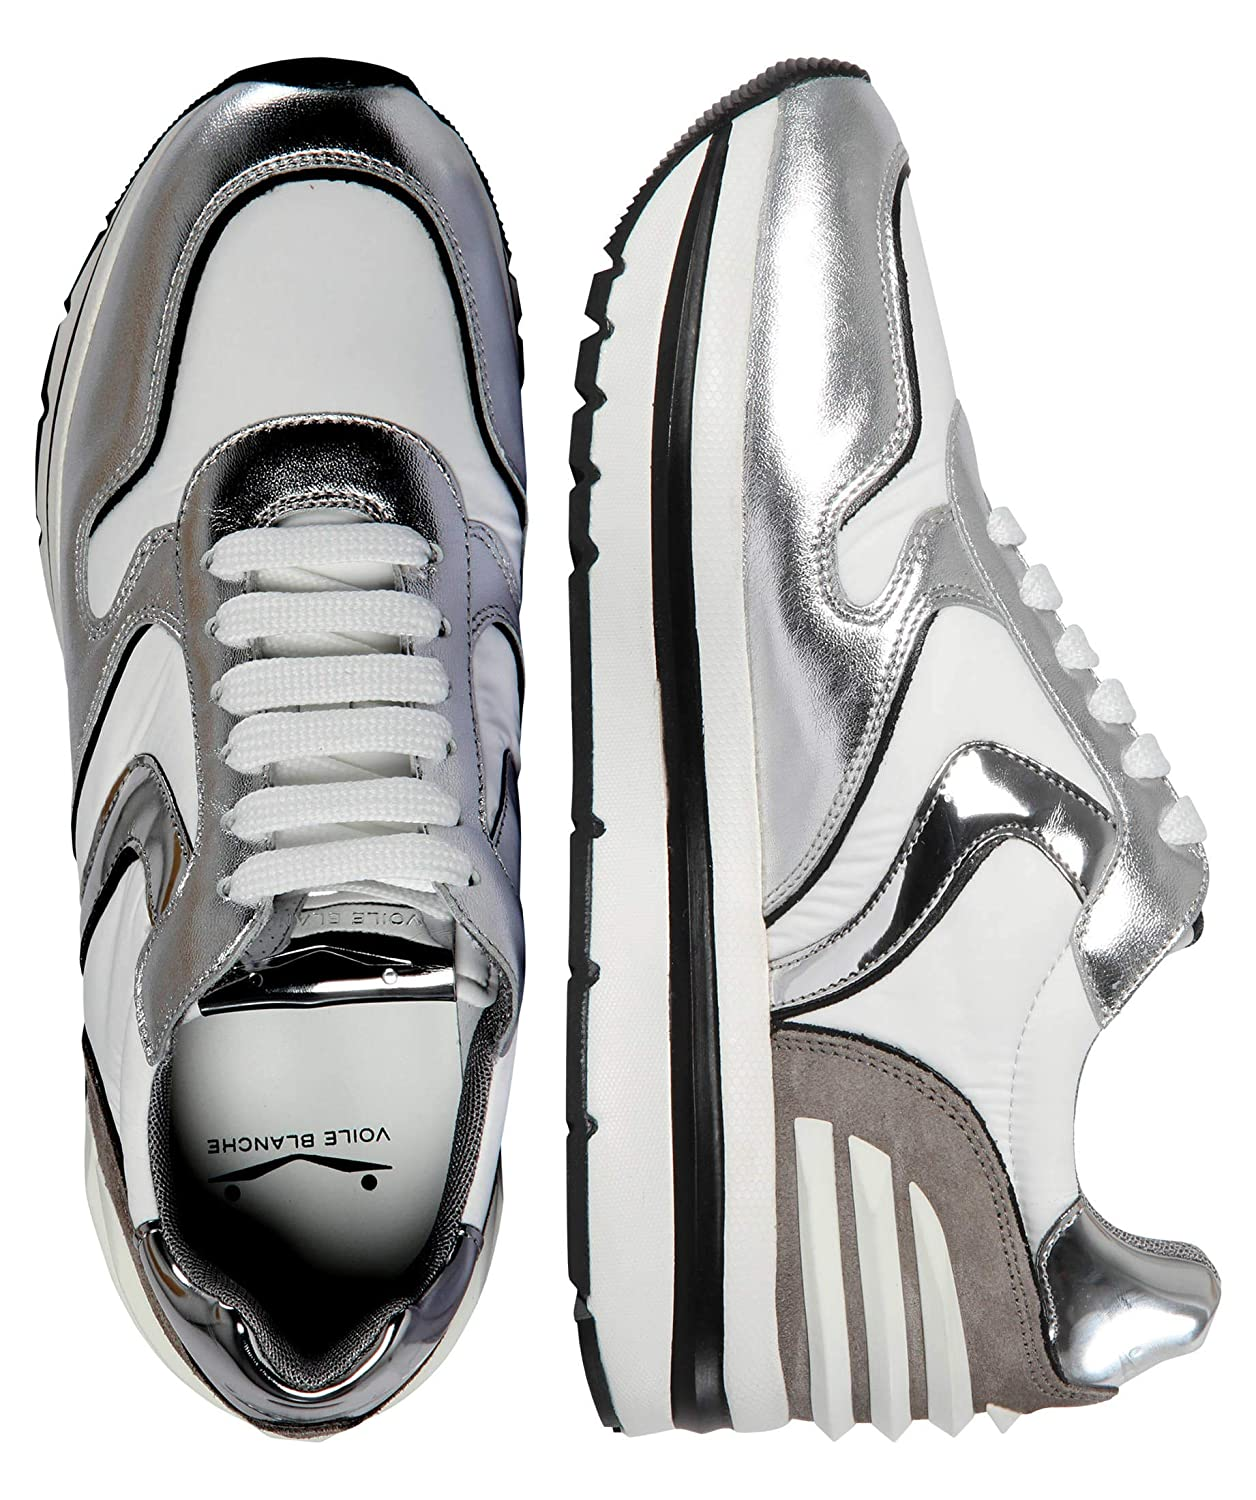 Blanche Weiss1040Amazon Voile Power Damen Plateau May Sneaker CdxBeo